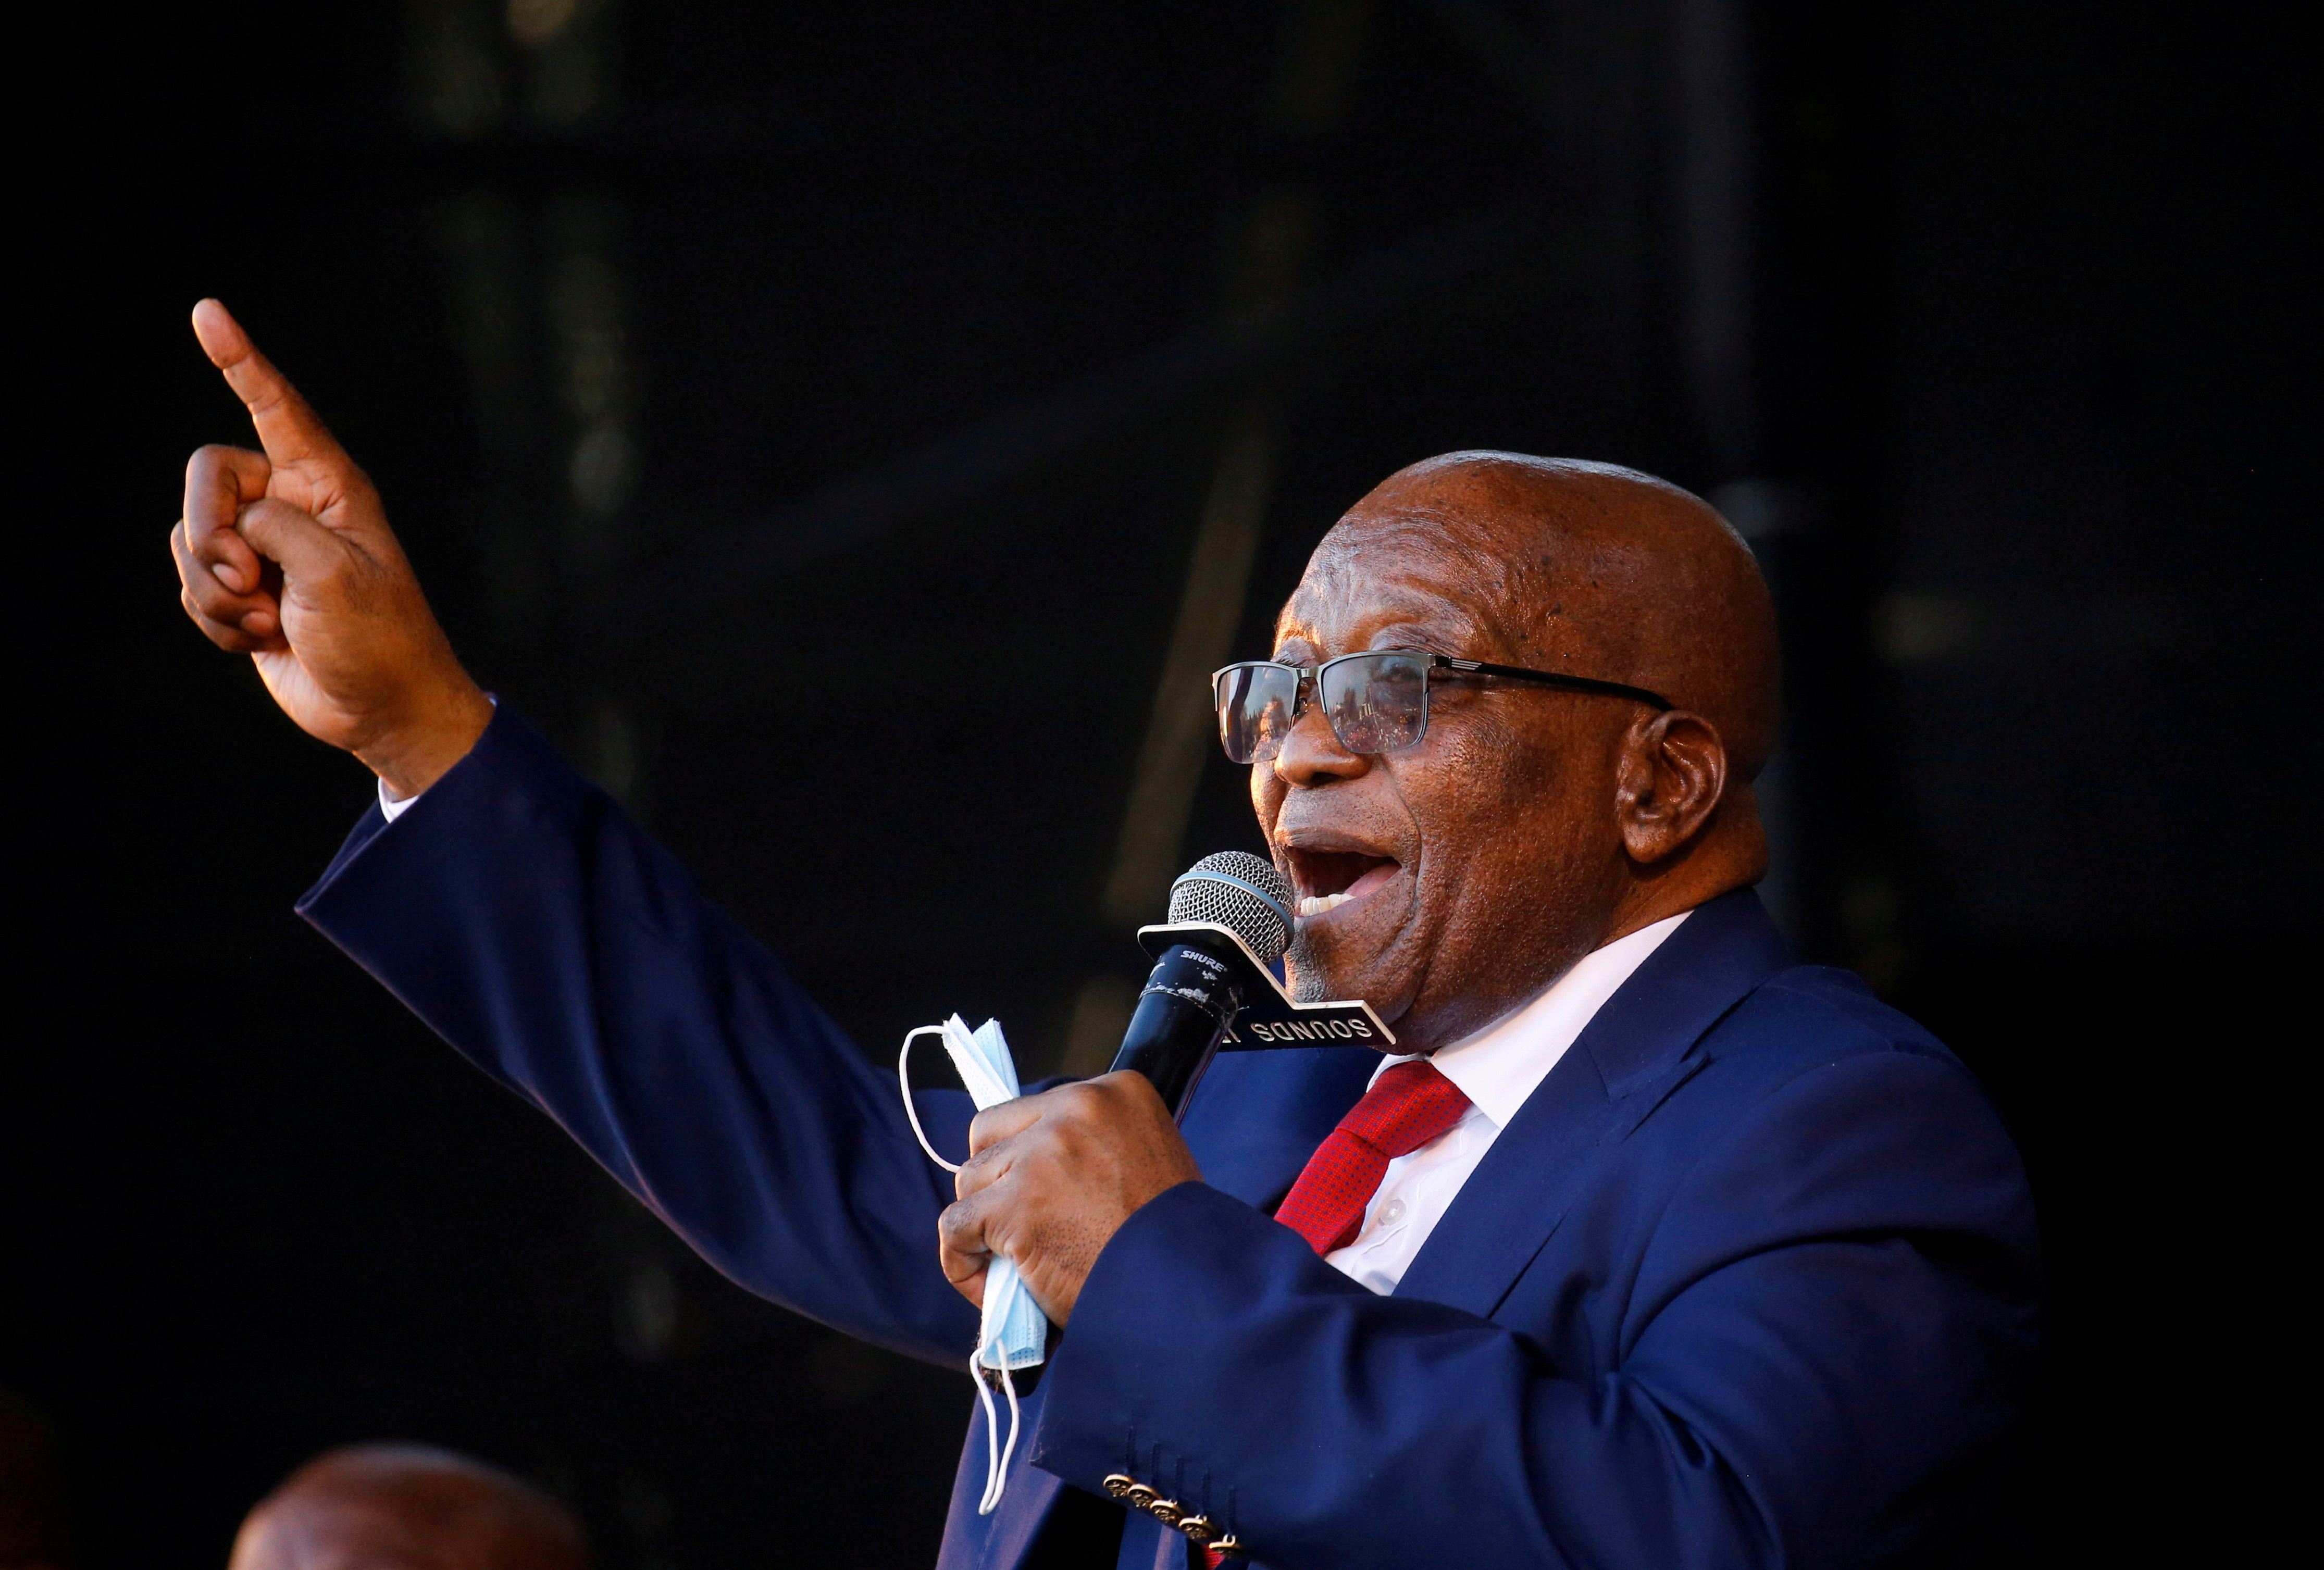 Former South African President Jacob Zuma, who is facing fraud and corruption charge.  REUTERS/Rogan Ward